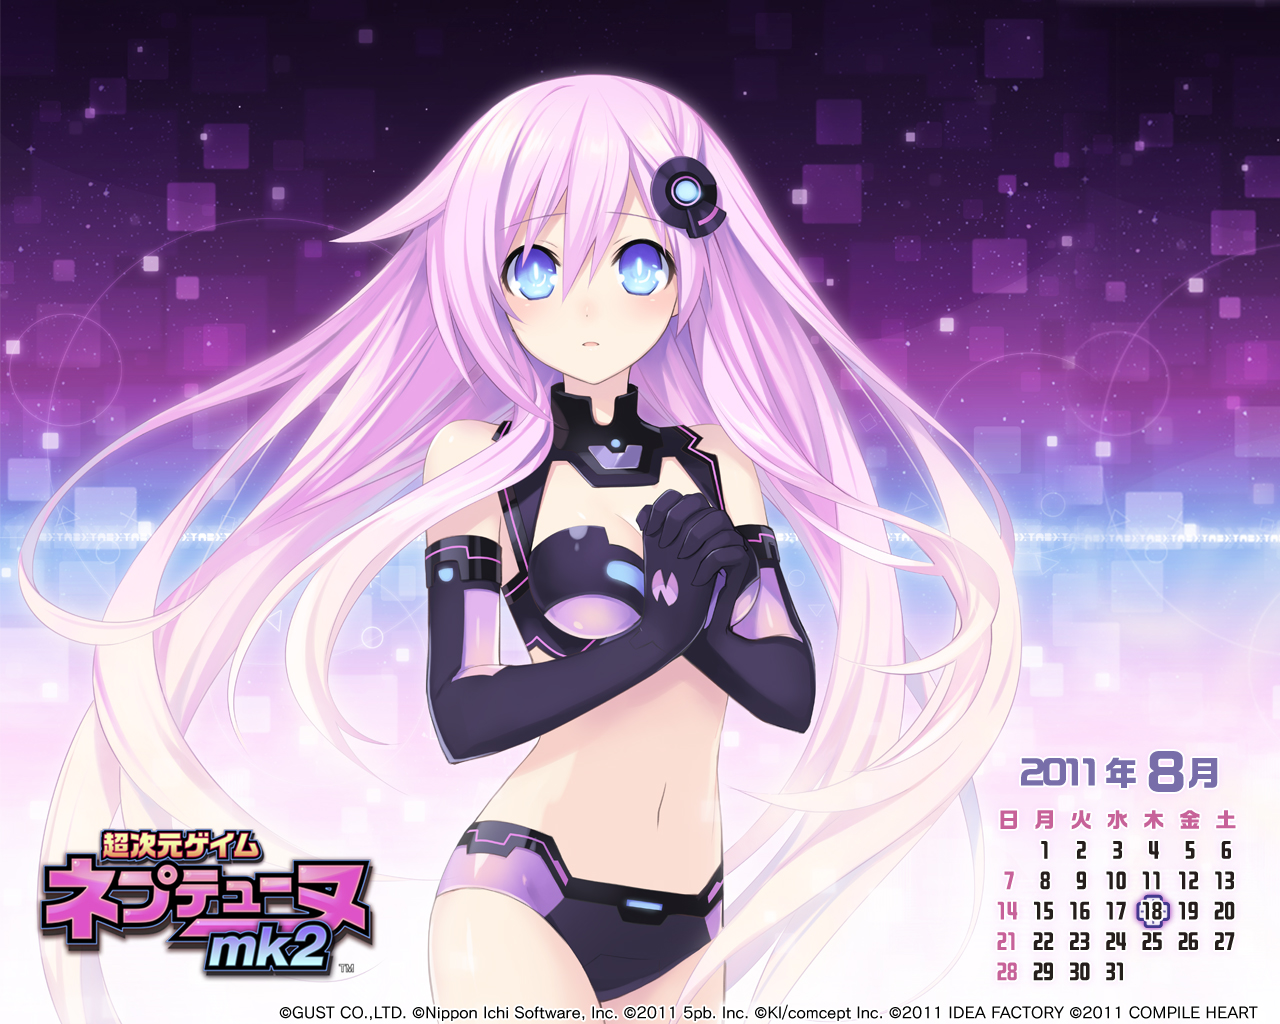 blue_eyes calendar hyperdimension_neptunia_mk2 pink_hair purple_sister tsunako watermark